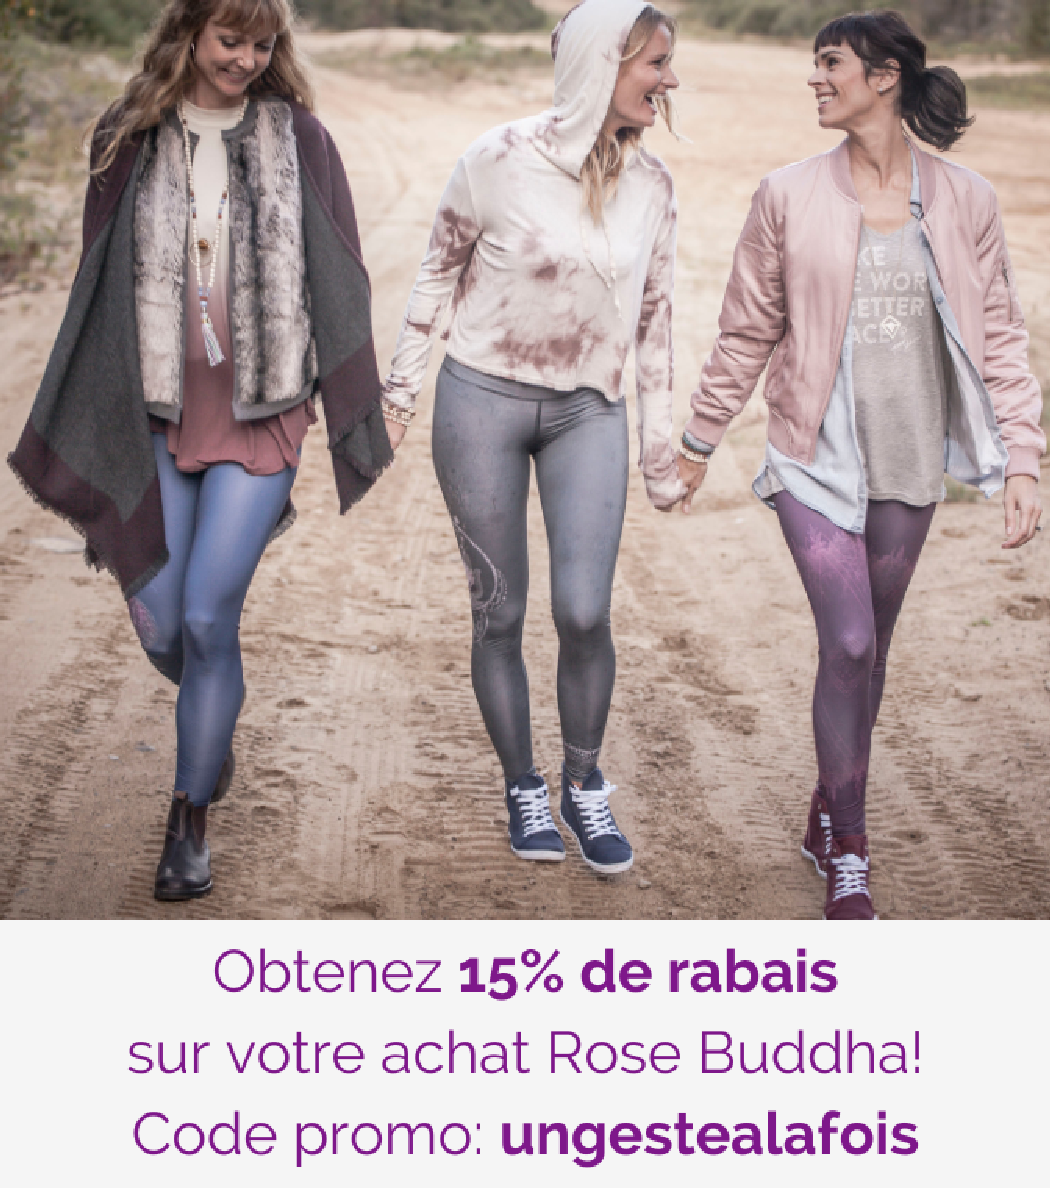 promotion Rose Buddha